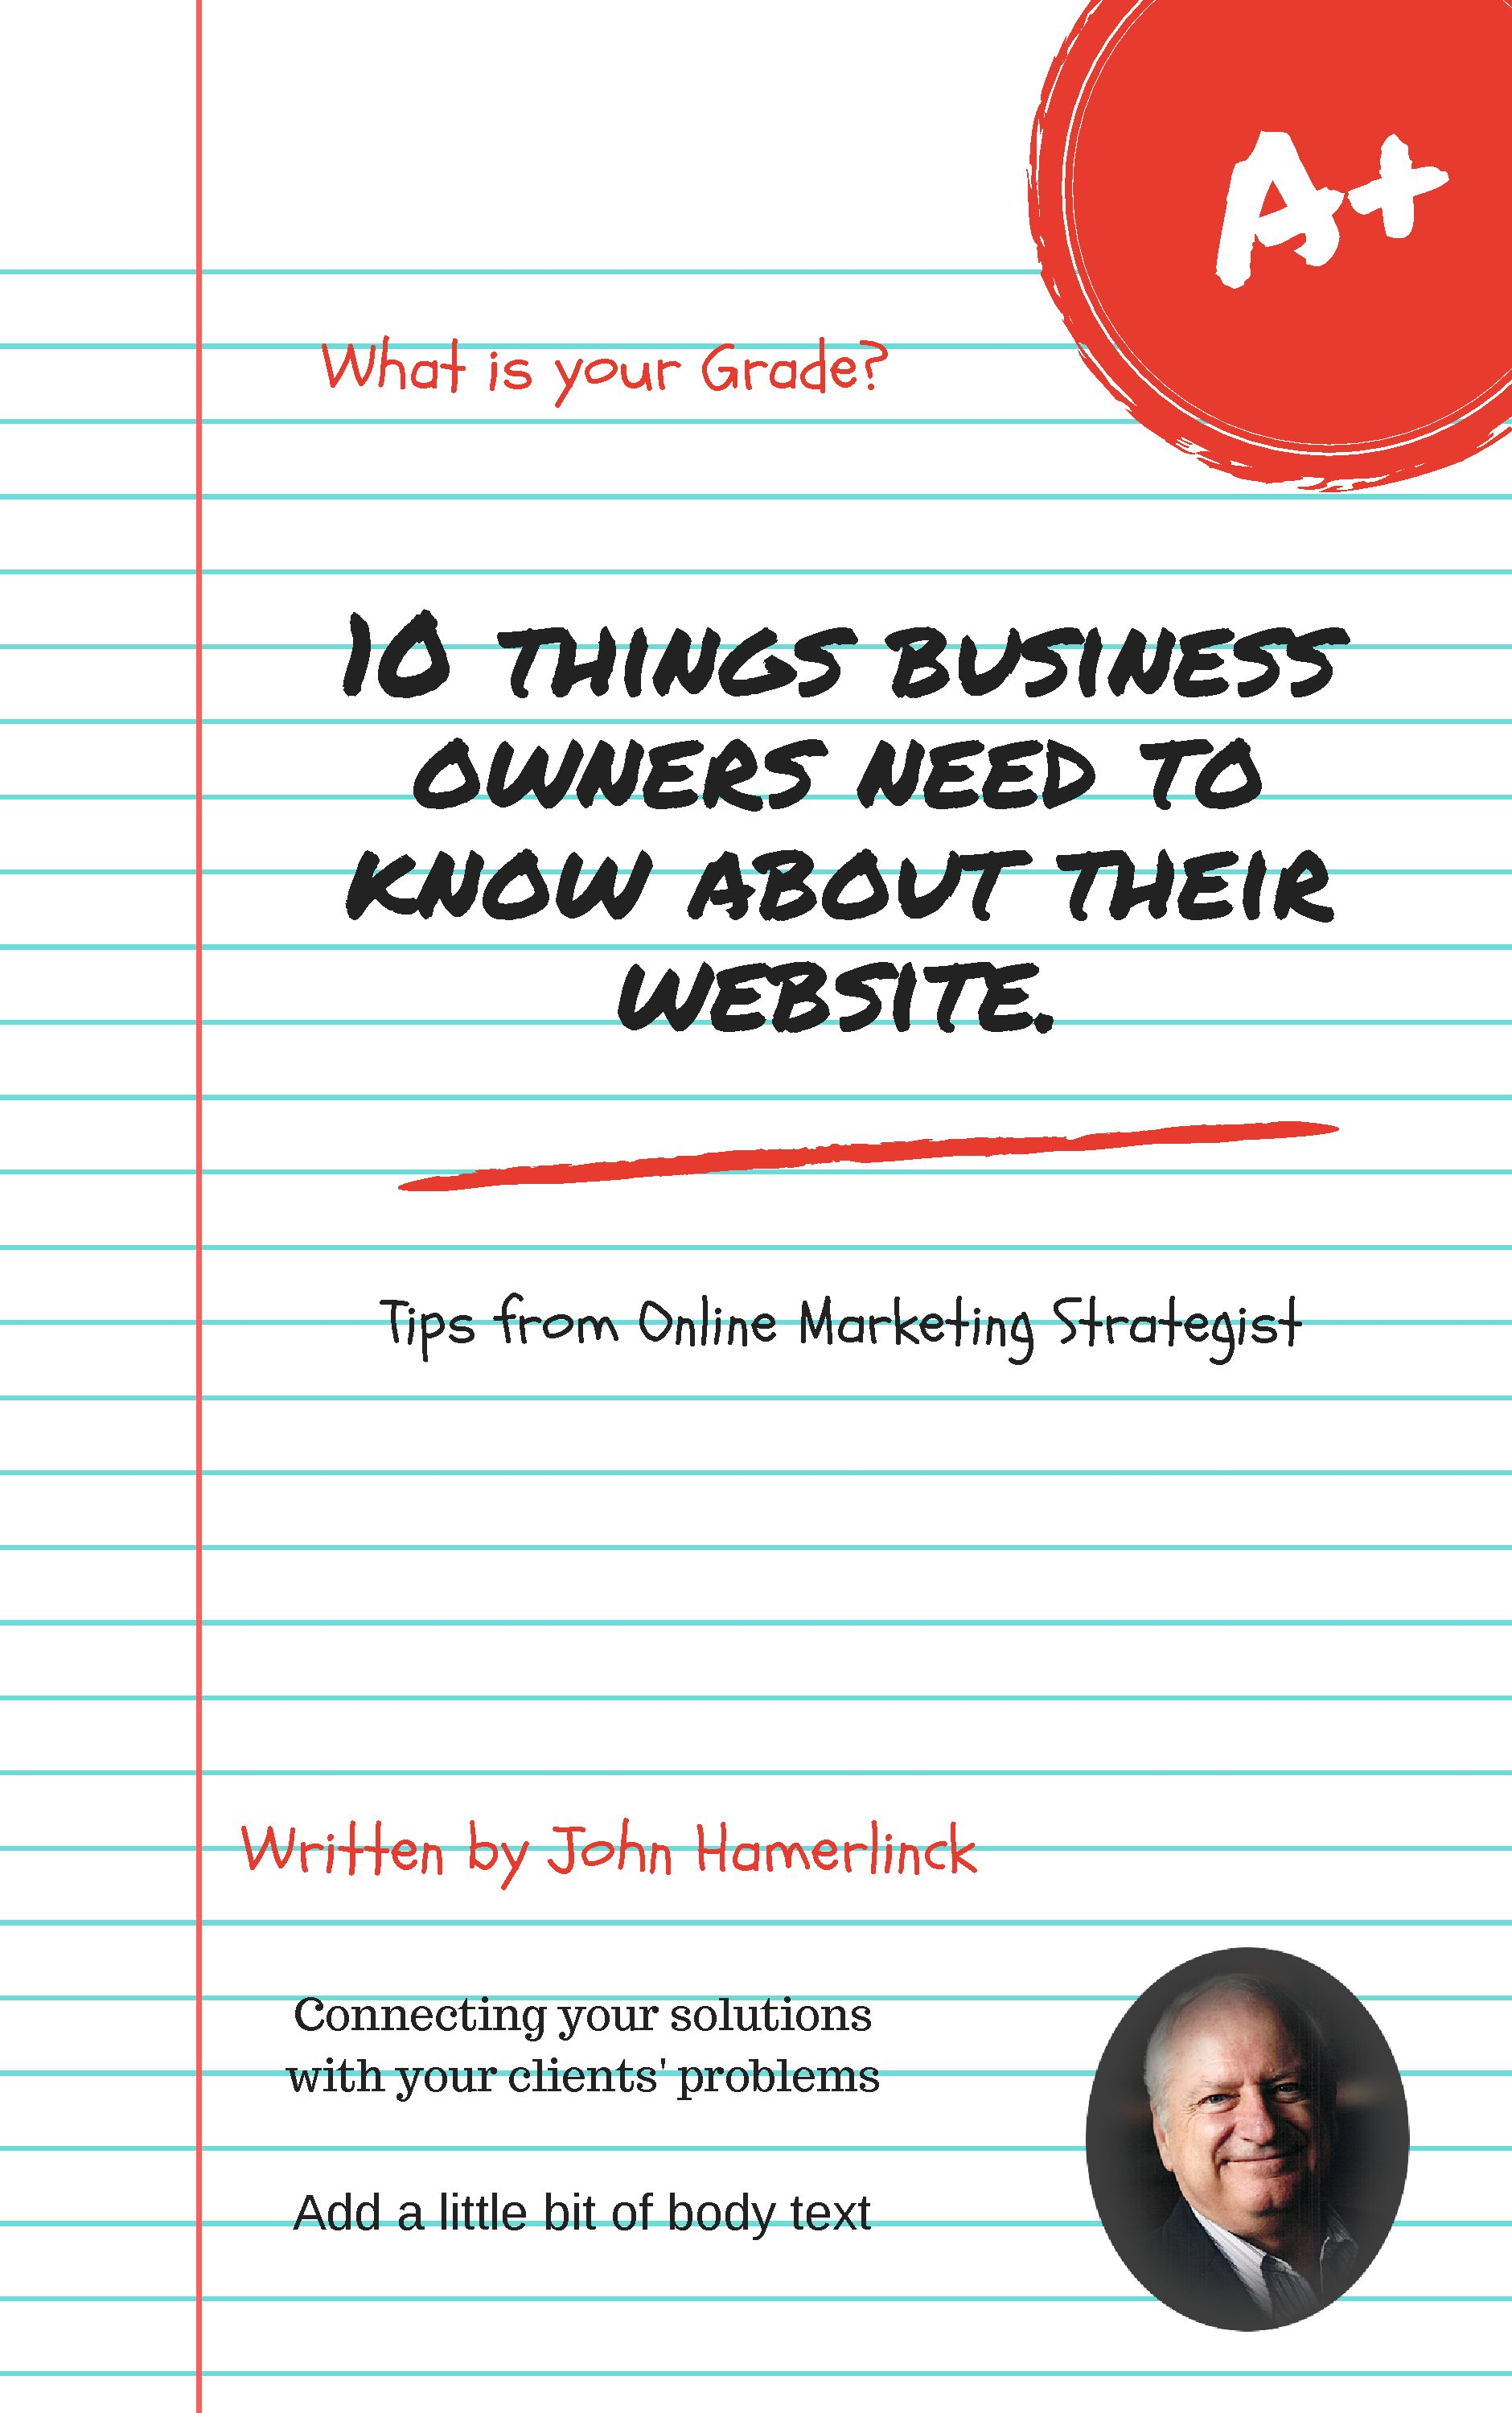 Ebook on Ten Things a Business Owner Needs to Know About their Website